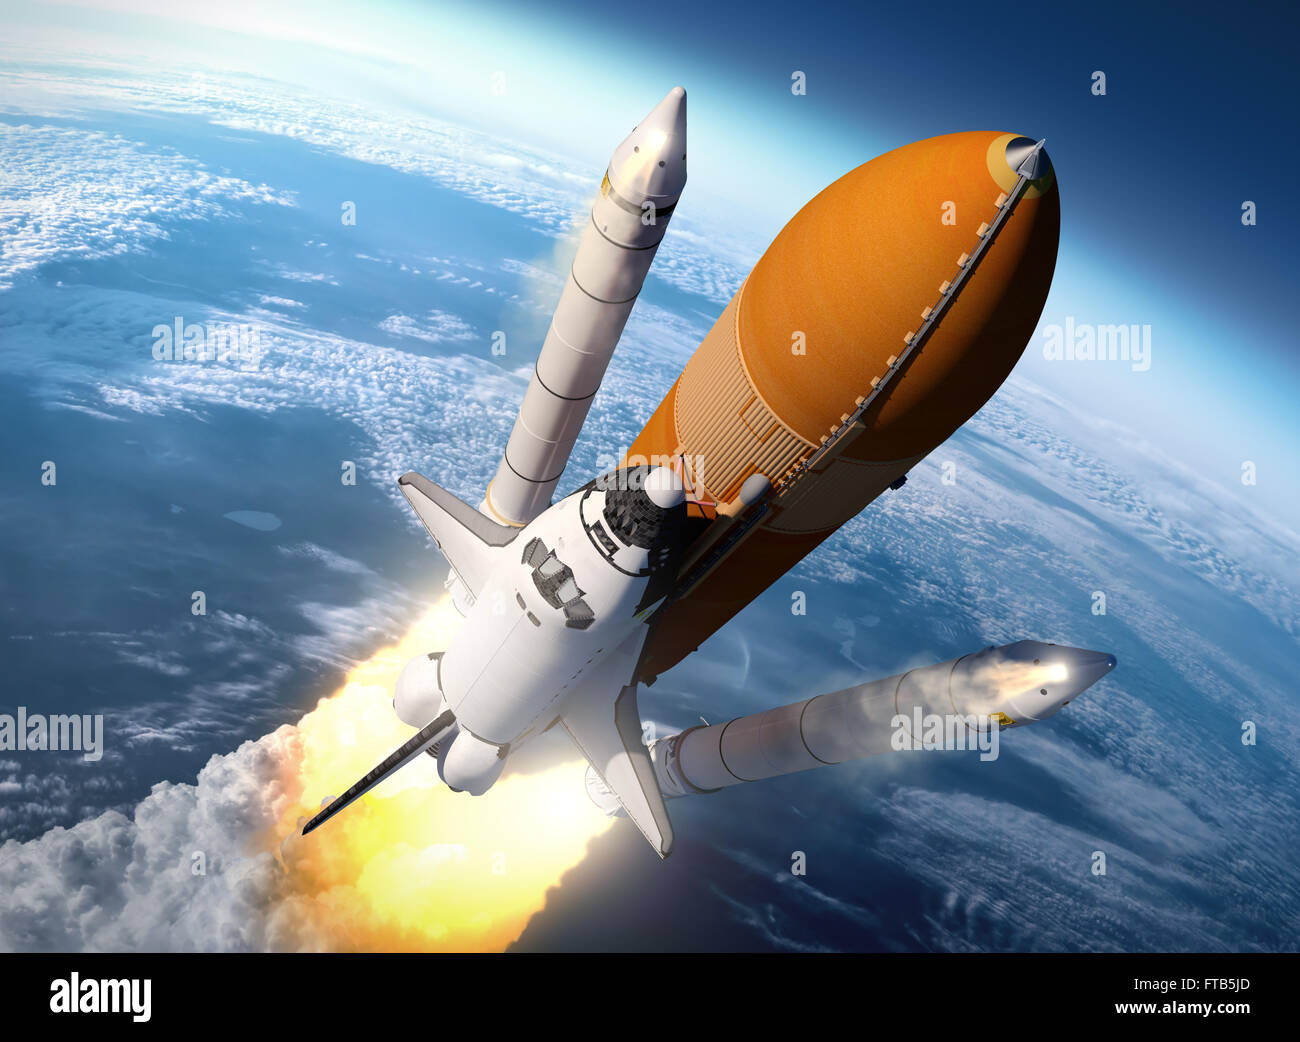 Space Shuttle Solid Rocket Boosters Separation. 3D Scene. - Stock Image